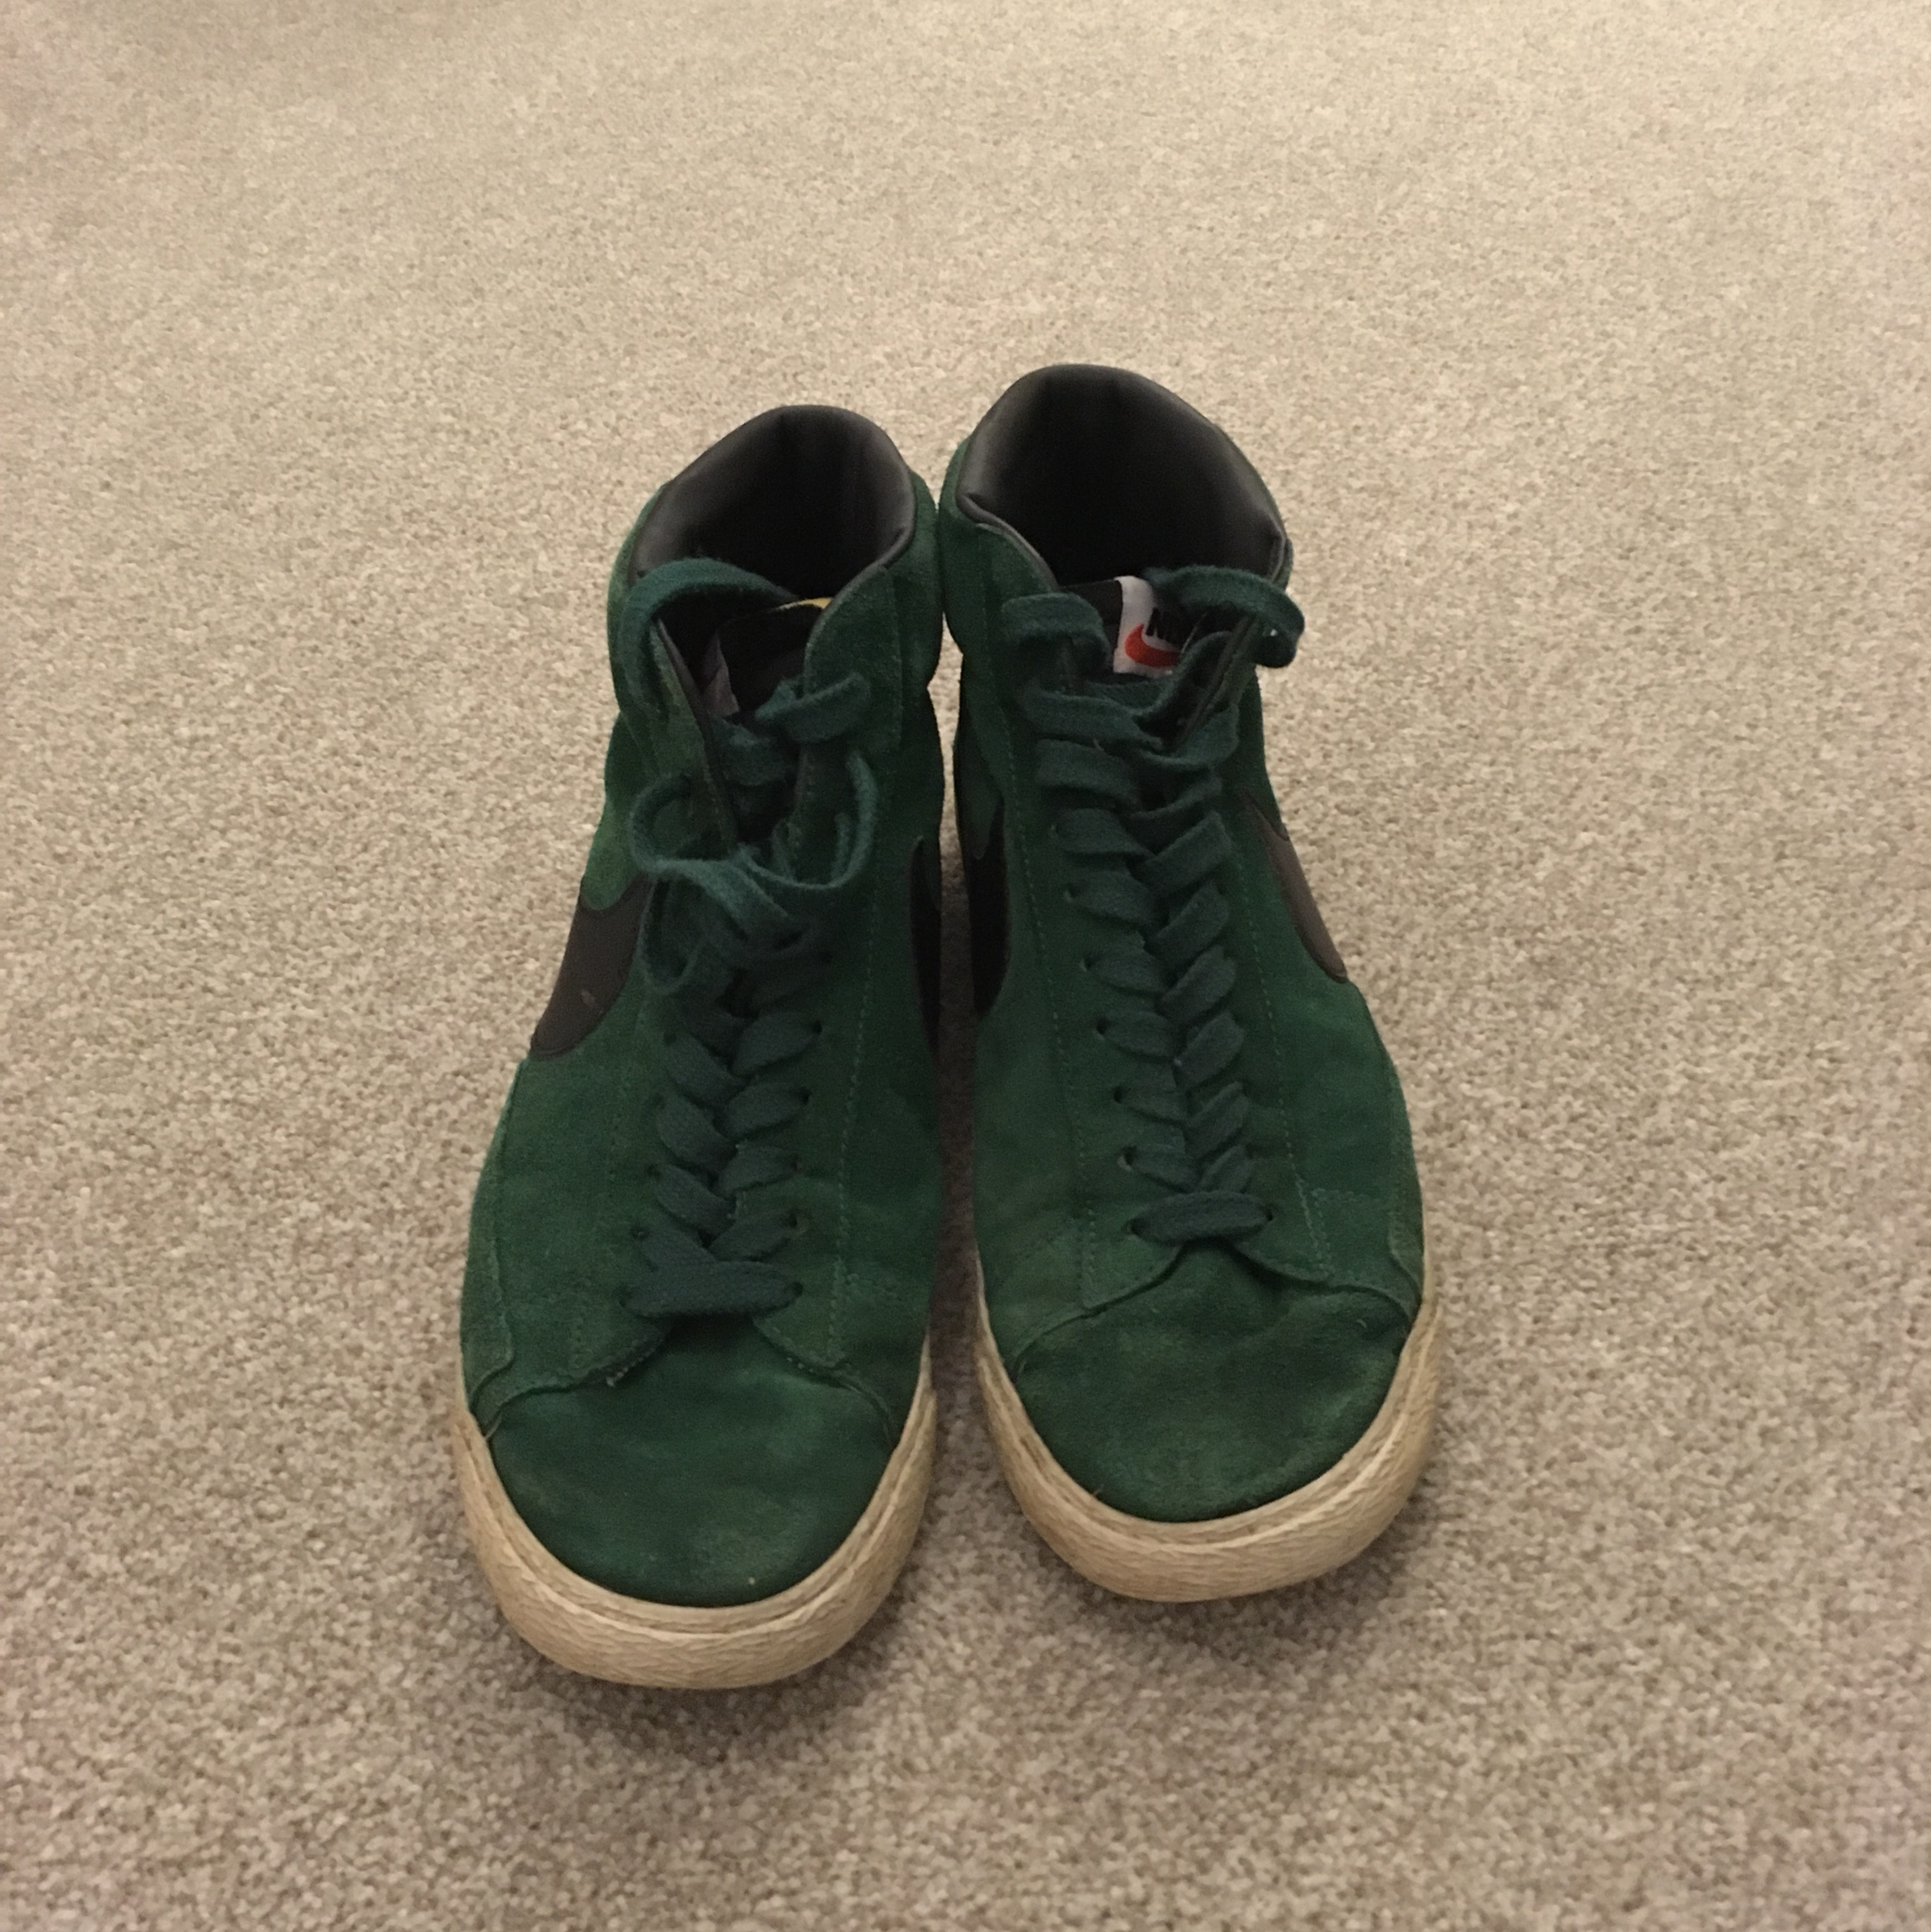 Green suede Nike high tops. Used but